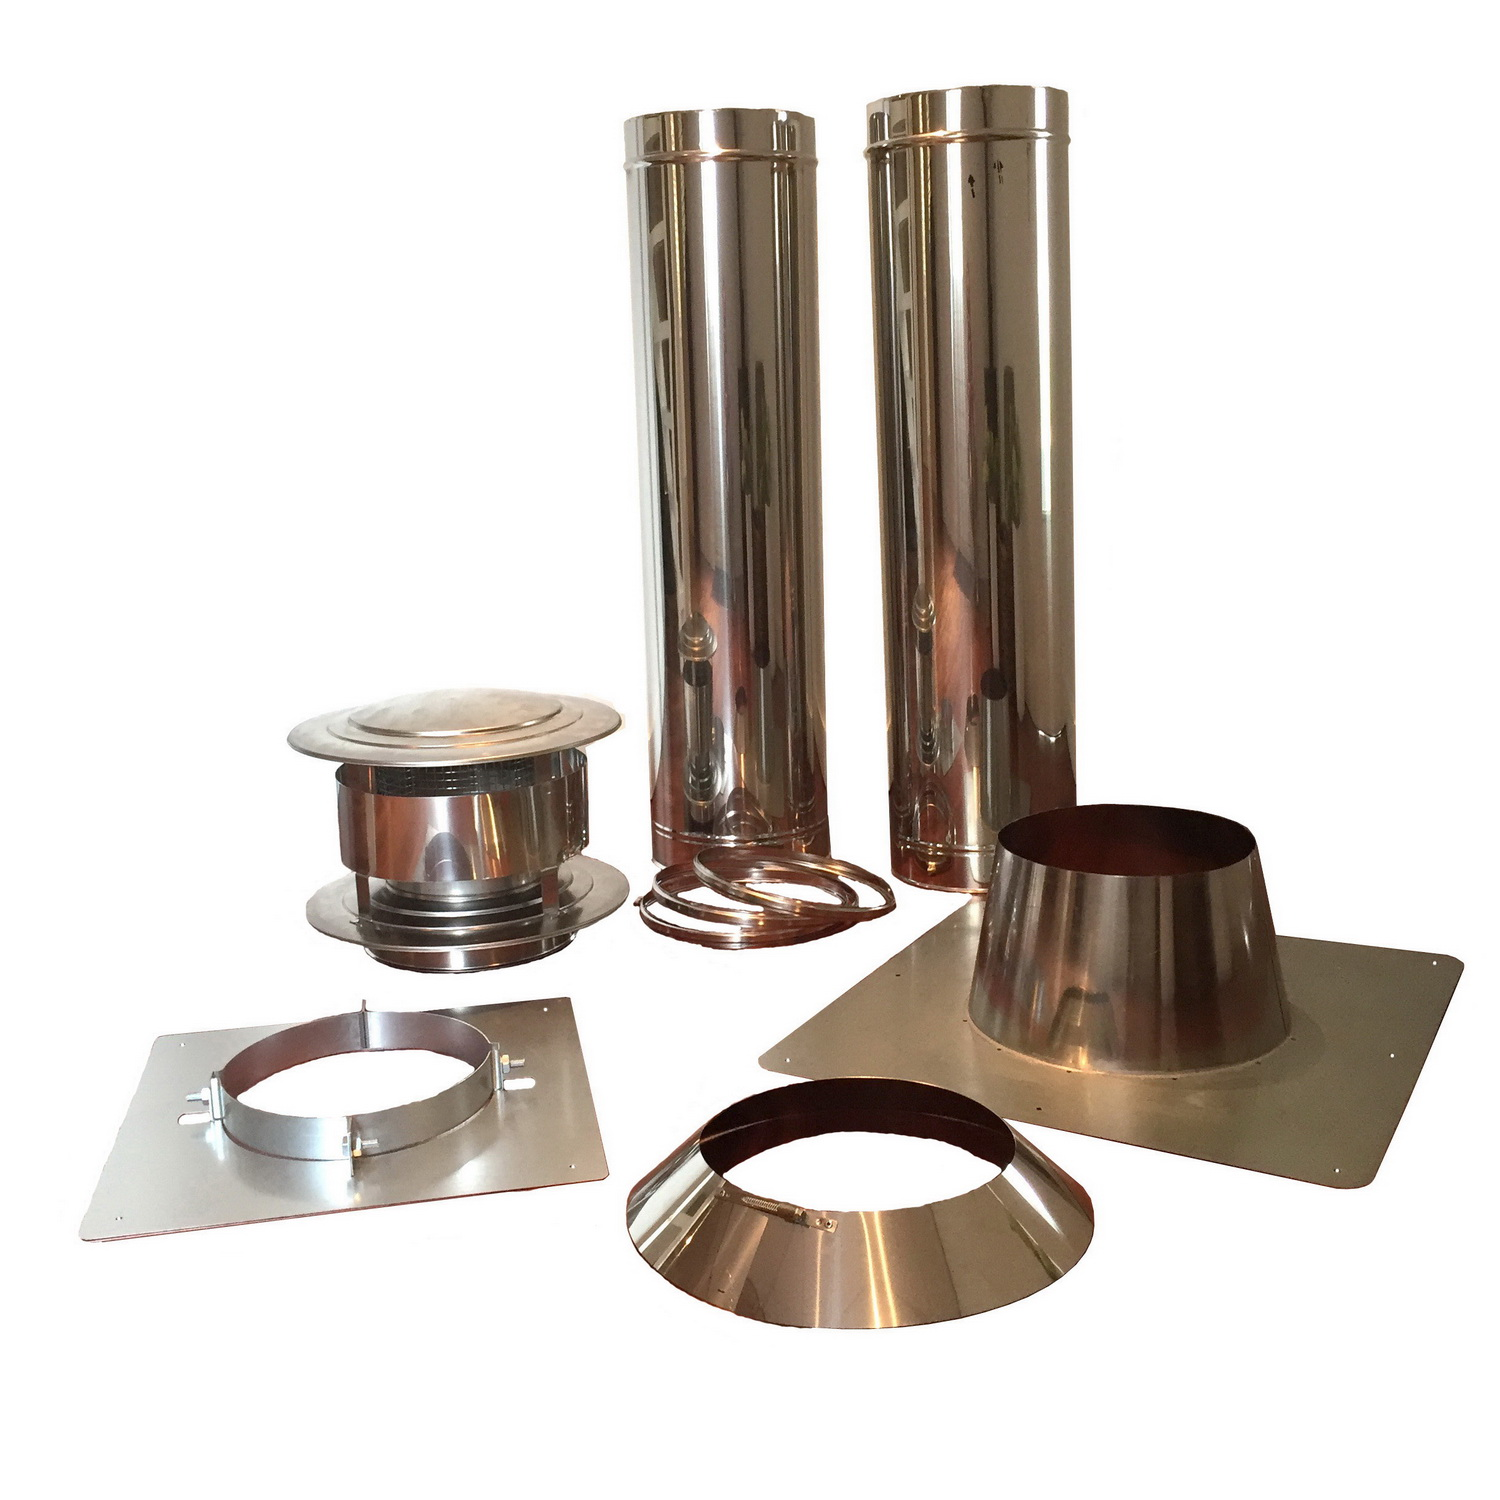 Double Wall Chimney set